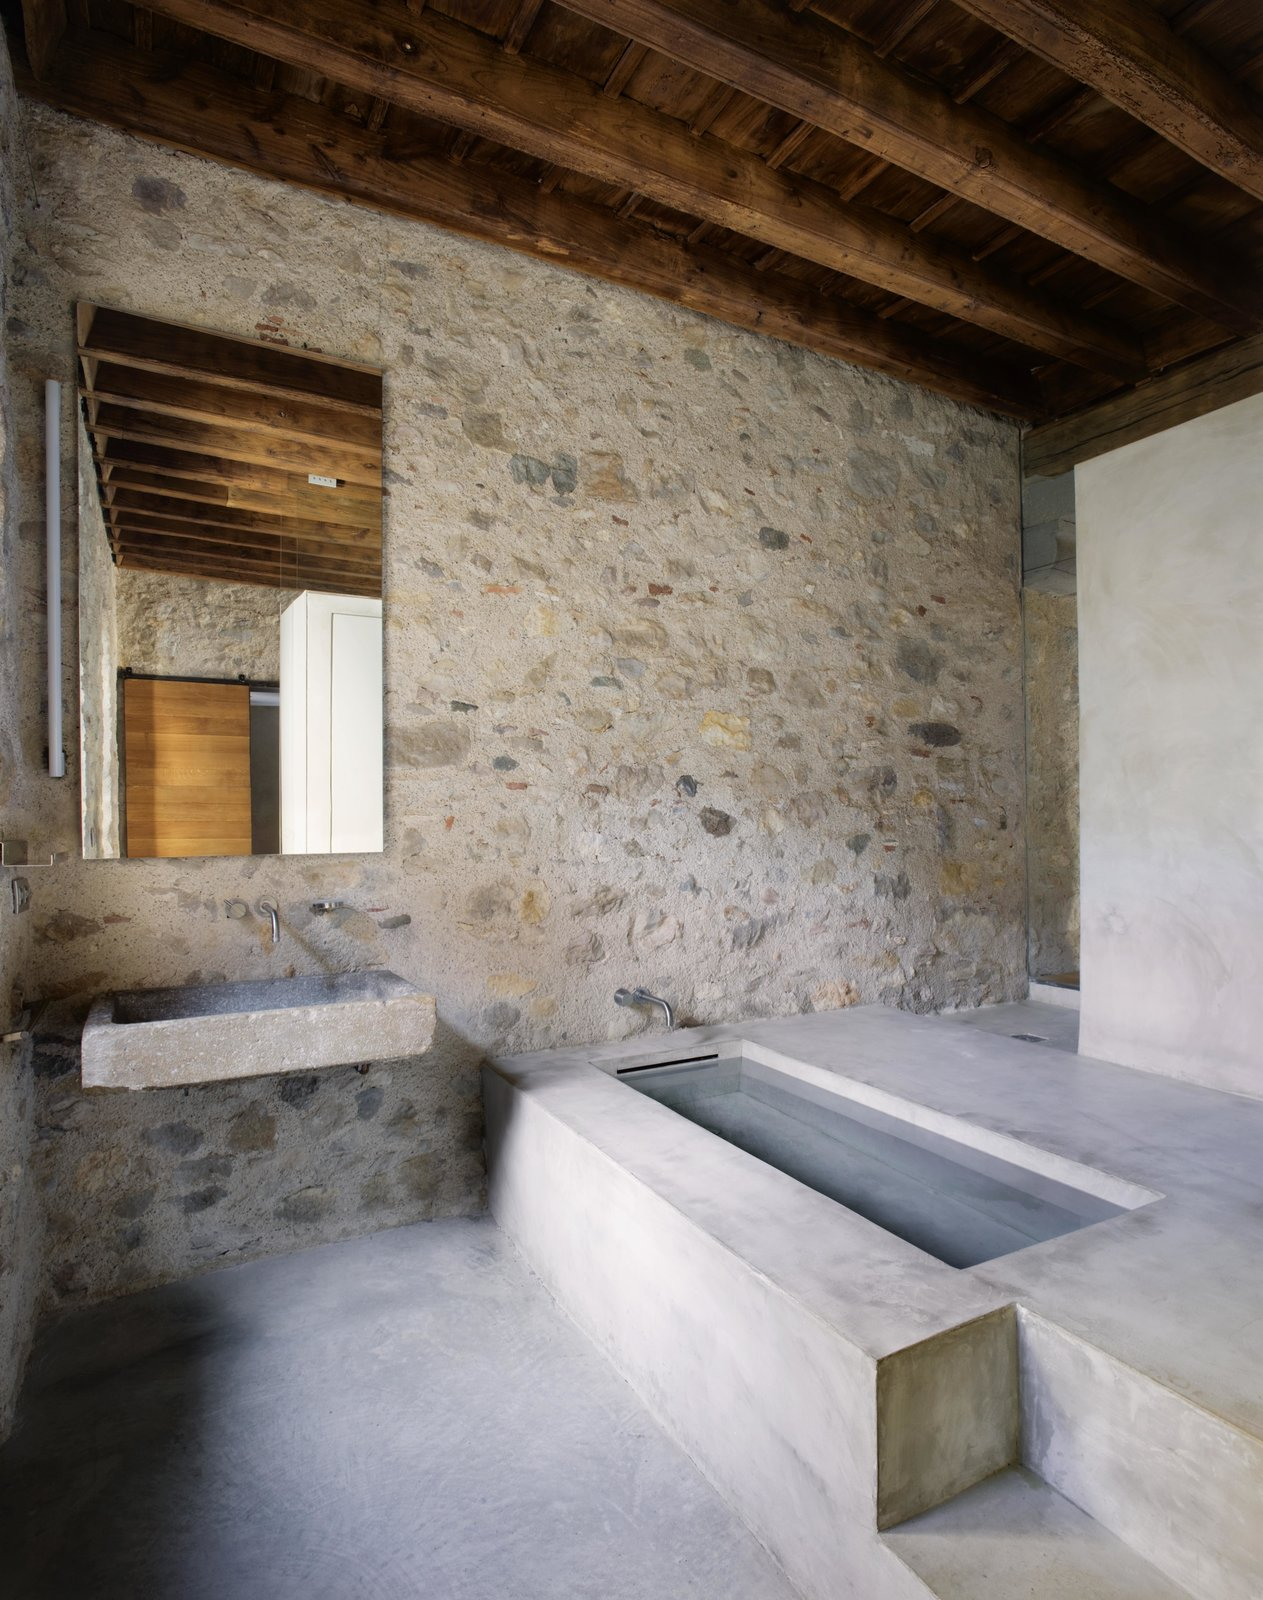 Bath Room, Wall Mount Sink, Concrete Floor, Stone Slab Wall, and Drop In Tub A clean-lined bathroom of stone and concrete.  Photo 11 of 15 in A Spanish Architect Transforms a Medieval Townhouse Into a Stunning Rental